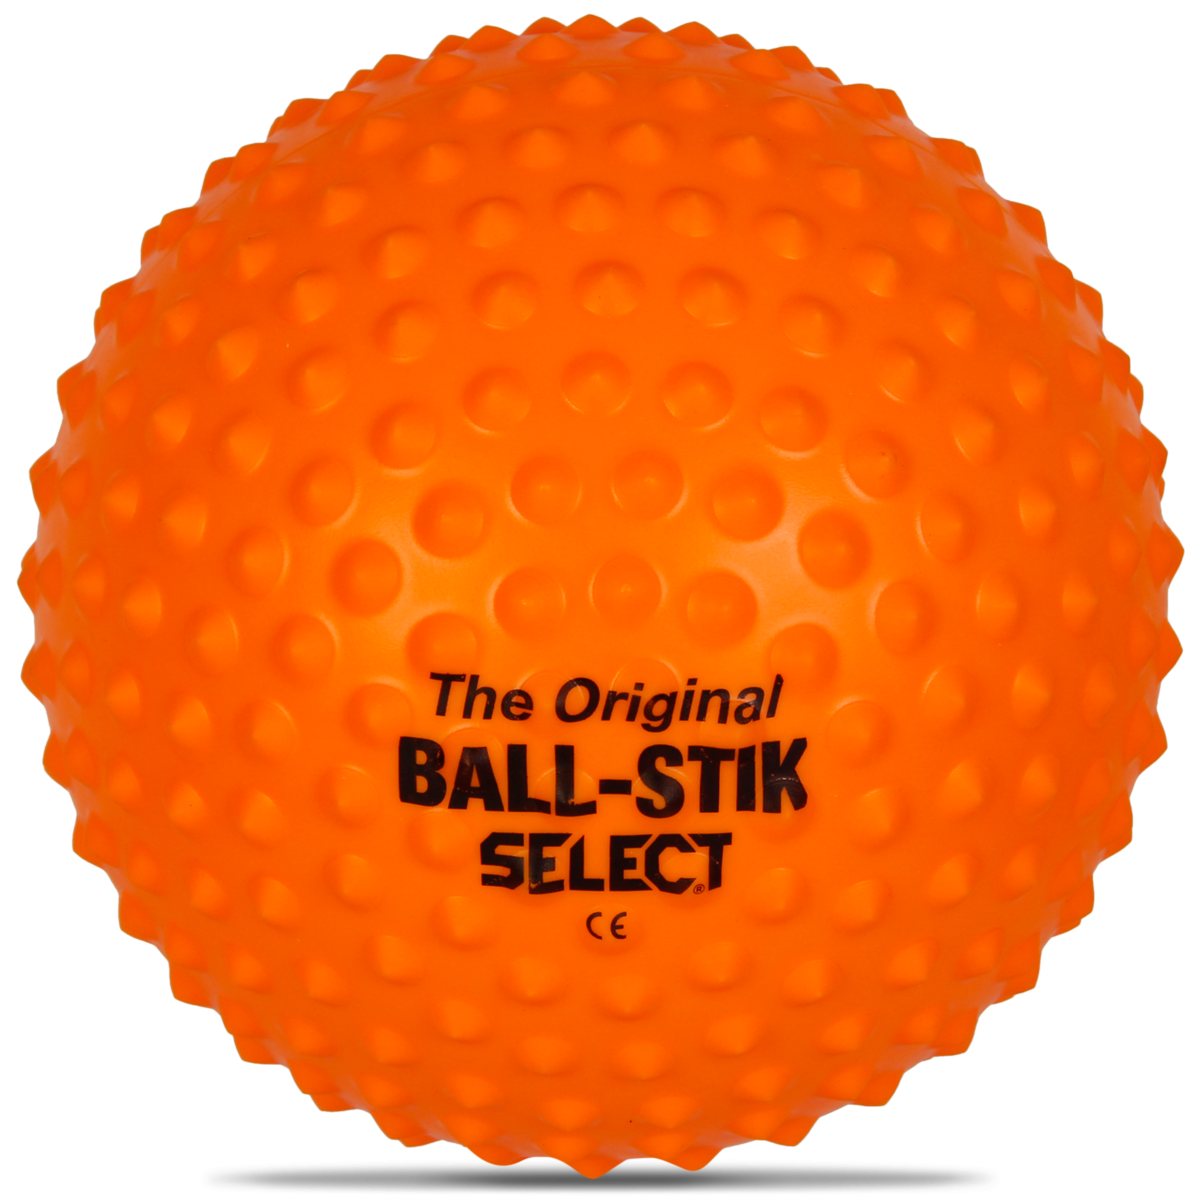 Ball-stik massagebold